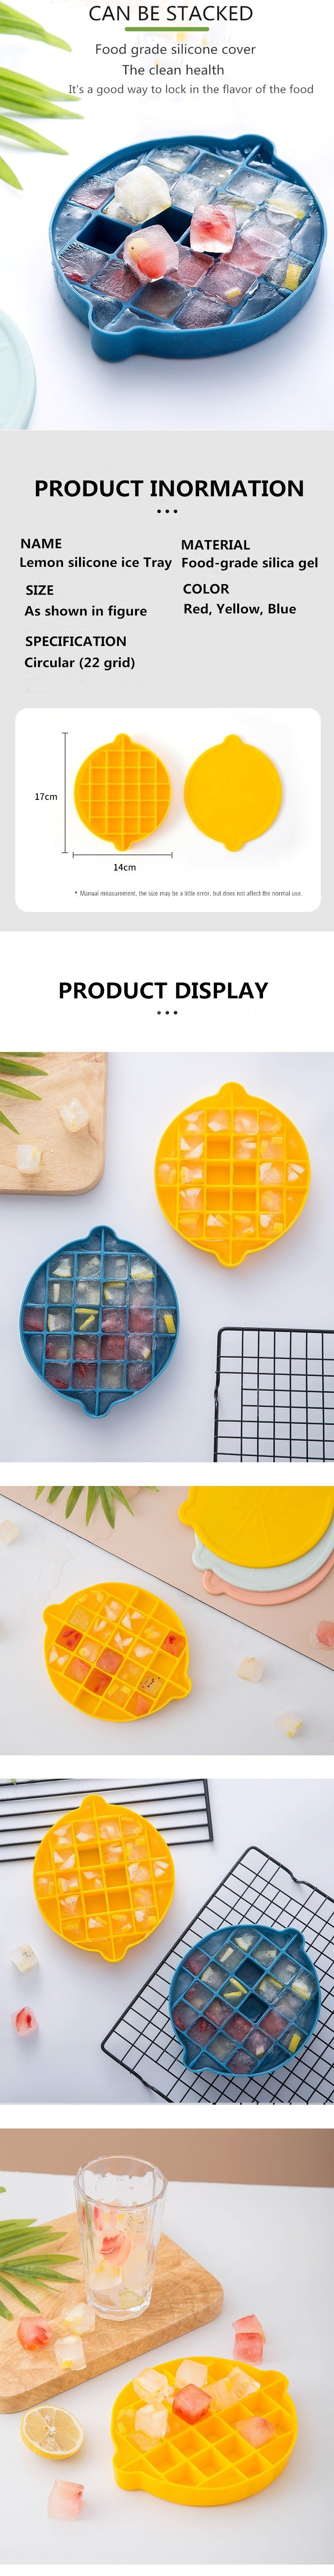 Promote Food Grade Silicone Ice Cube Maker Or Silicone Mould Or Ice Cube Tray China Ice Cube Maker And Ice Maker Price Made In China Com